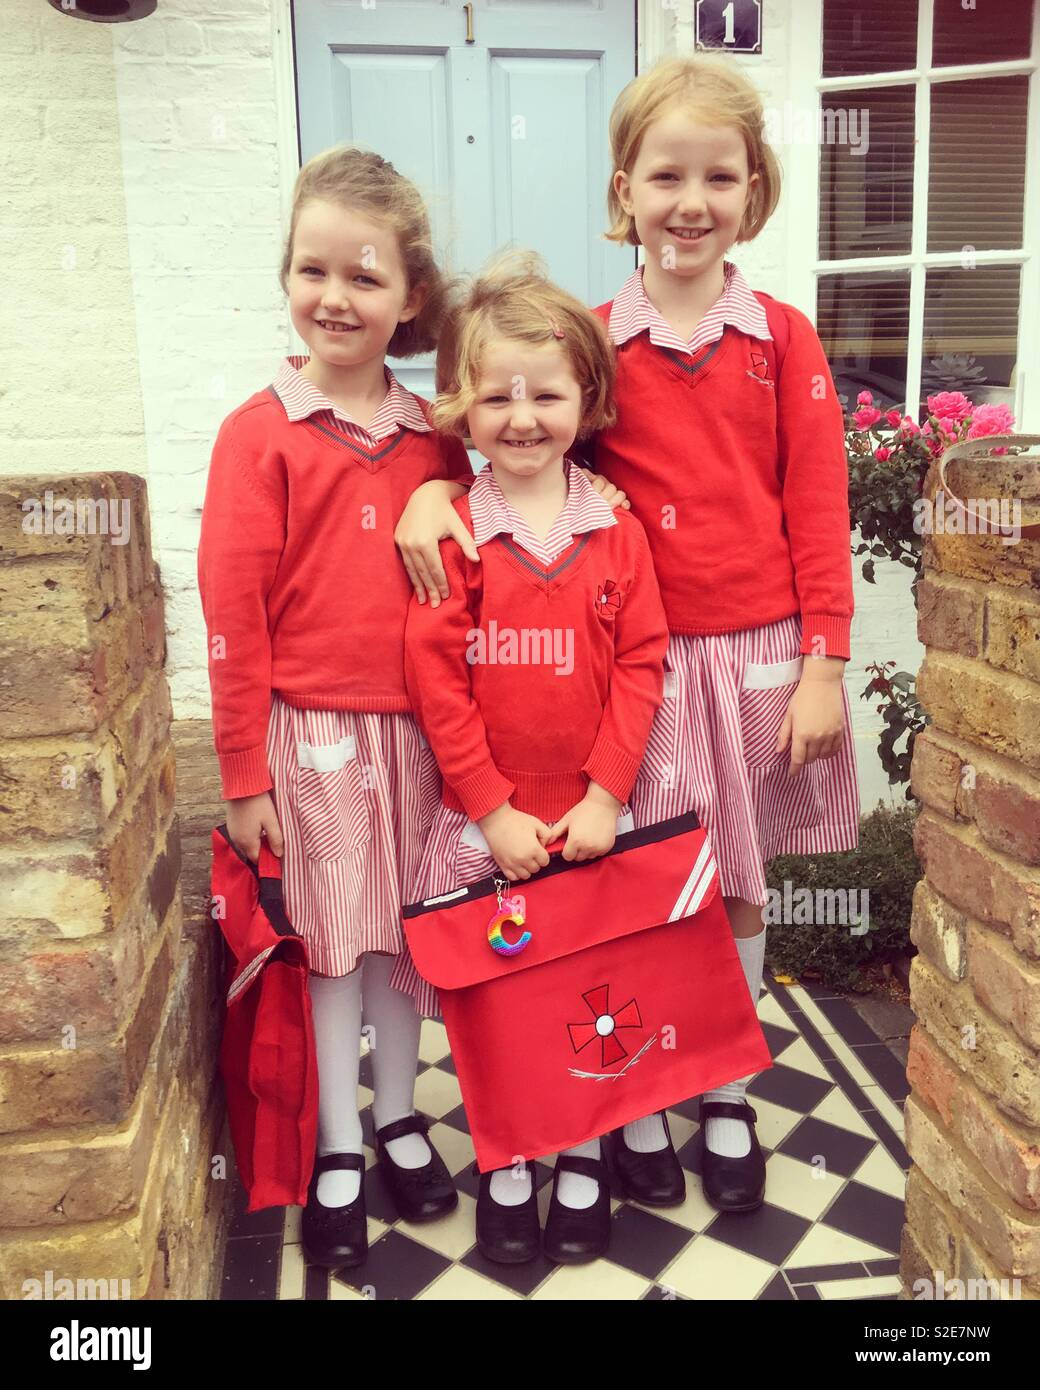 3 young sisters / kids / children / Sister / young kid / girls / girl standing at the front door ready to go to school on the first day of a new term. They are all primary school children. Uk - Stock Image